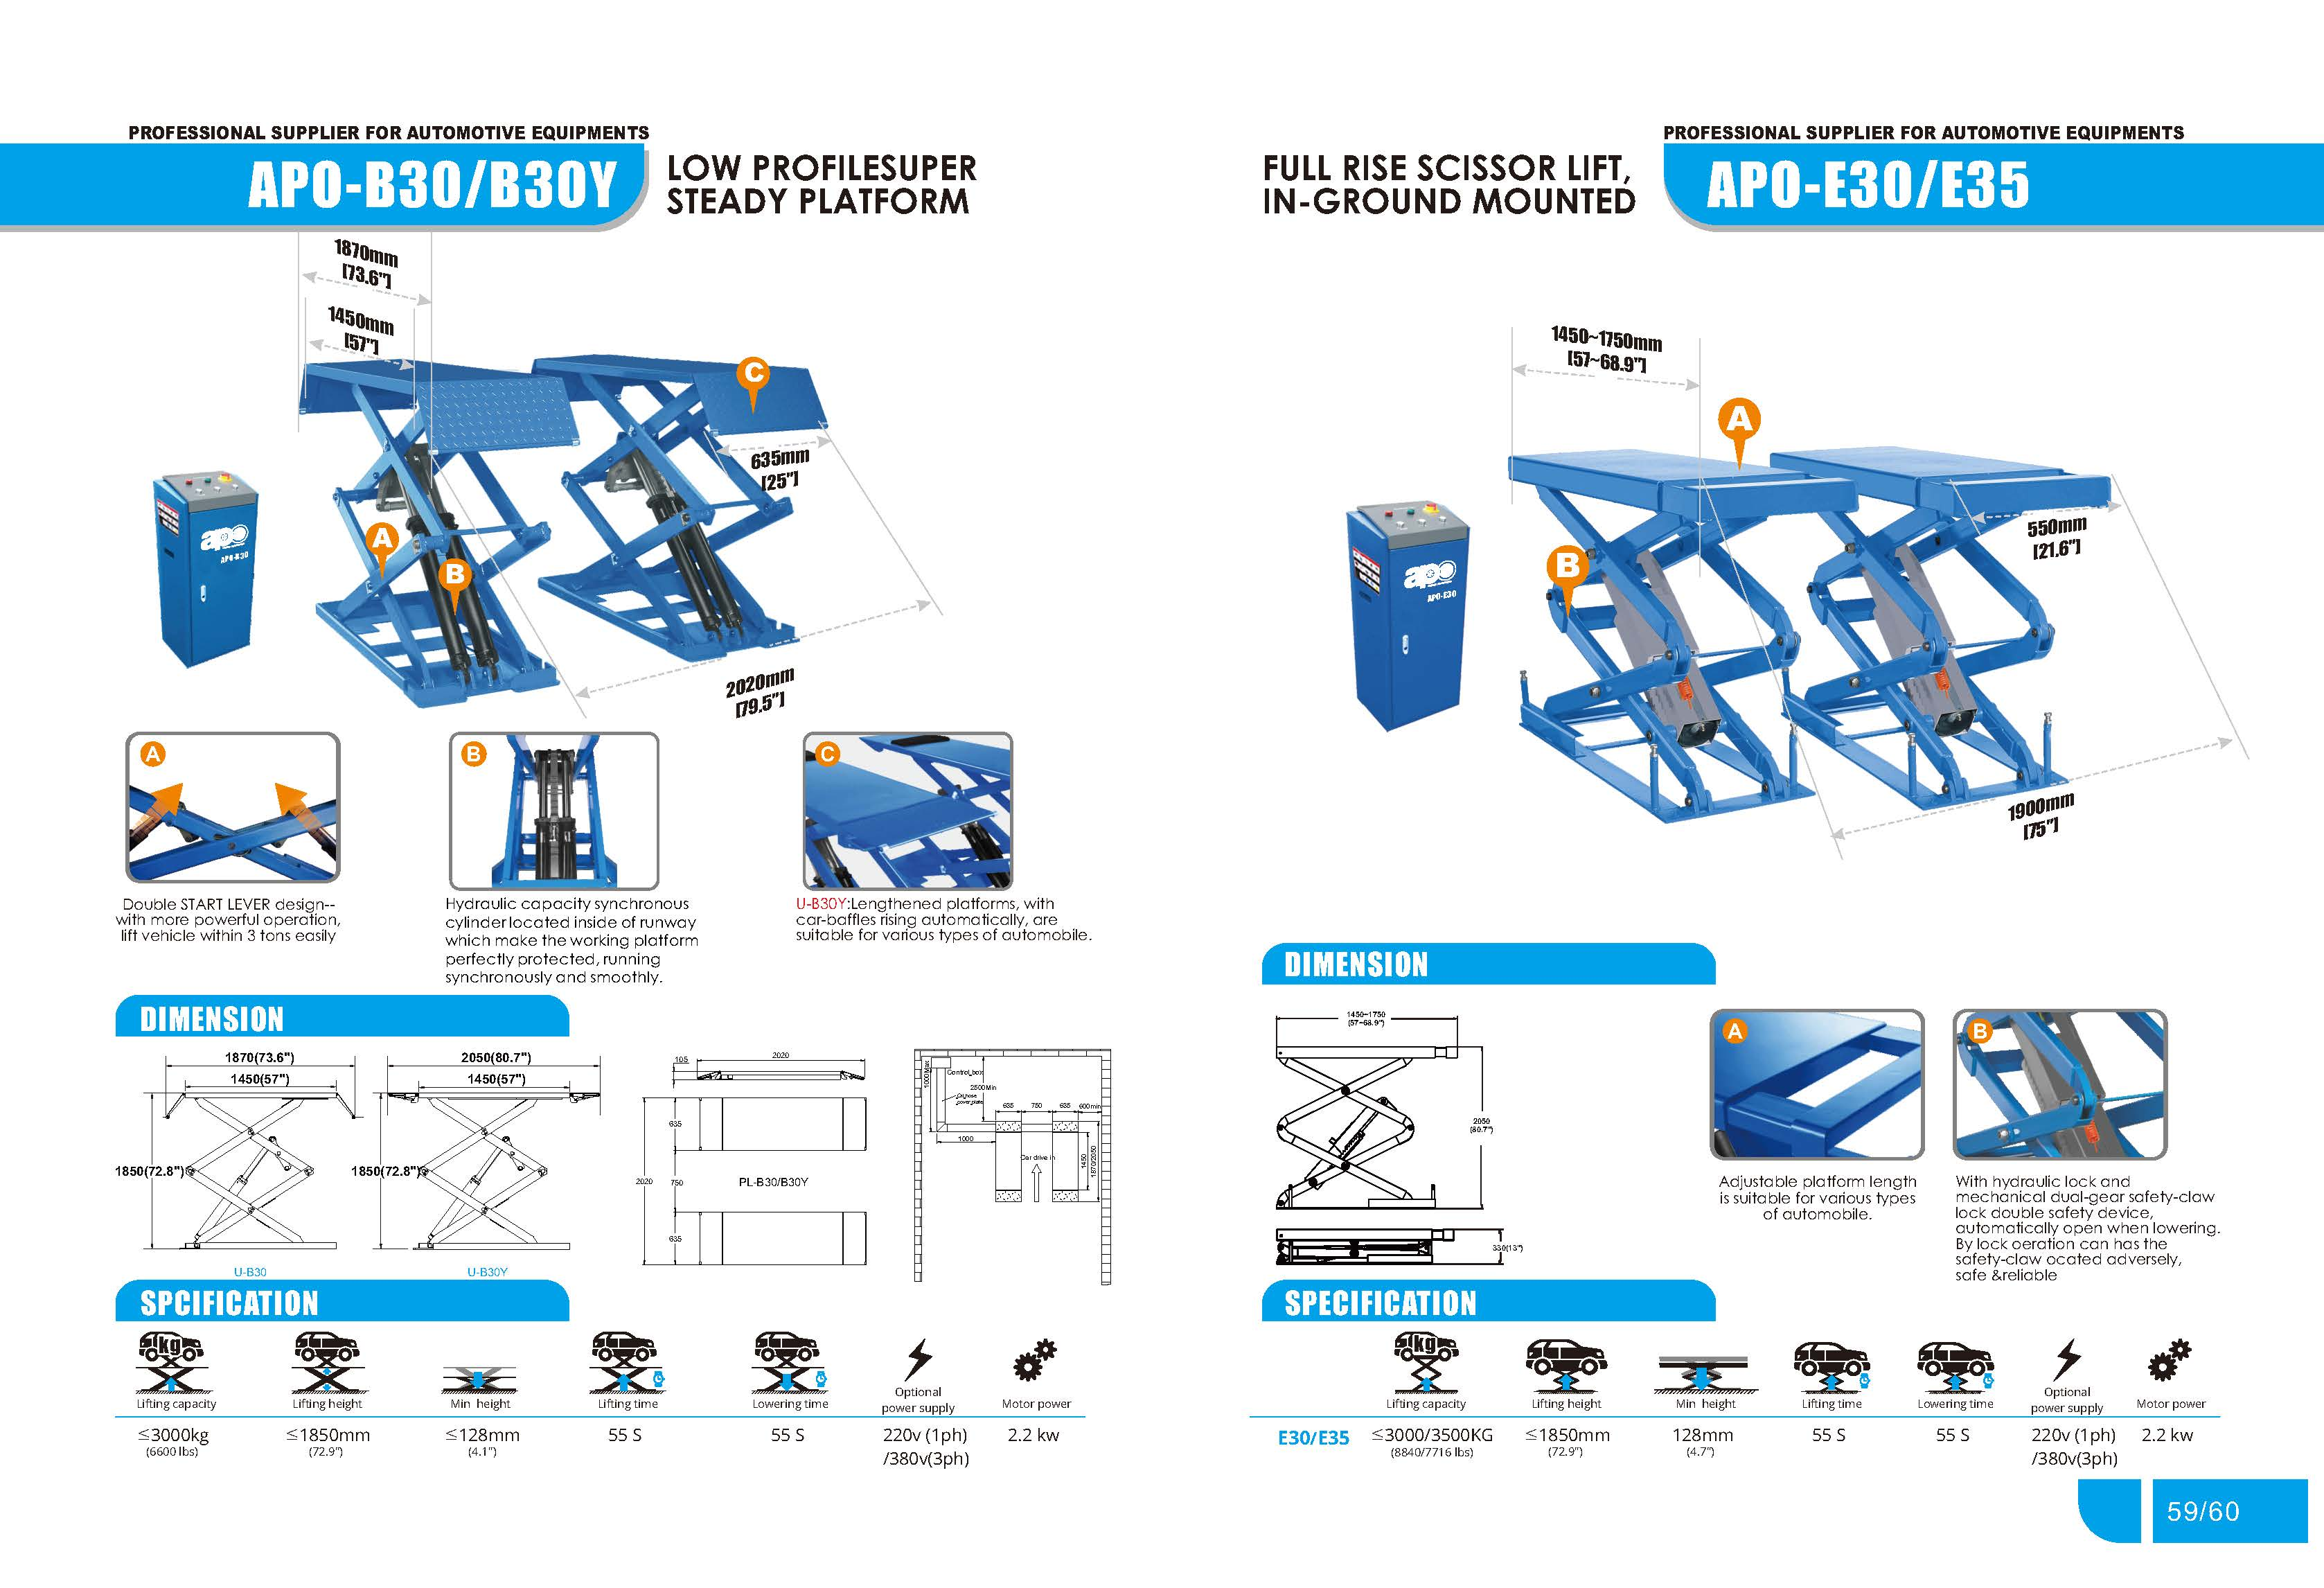 38975194001 original additionally as well besides in addition moreover  scissor lift catalog01 furthermore 56f75293e4833271f893fb9cfd5cbaa2 besides  ...